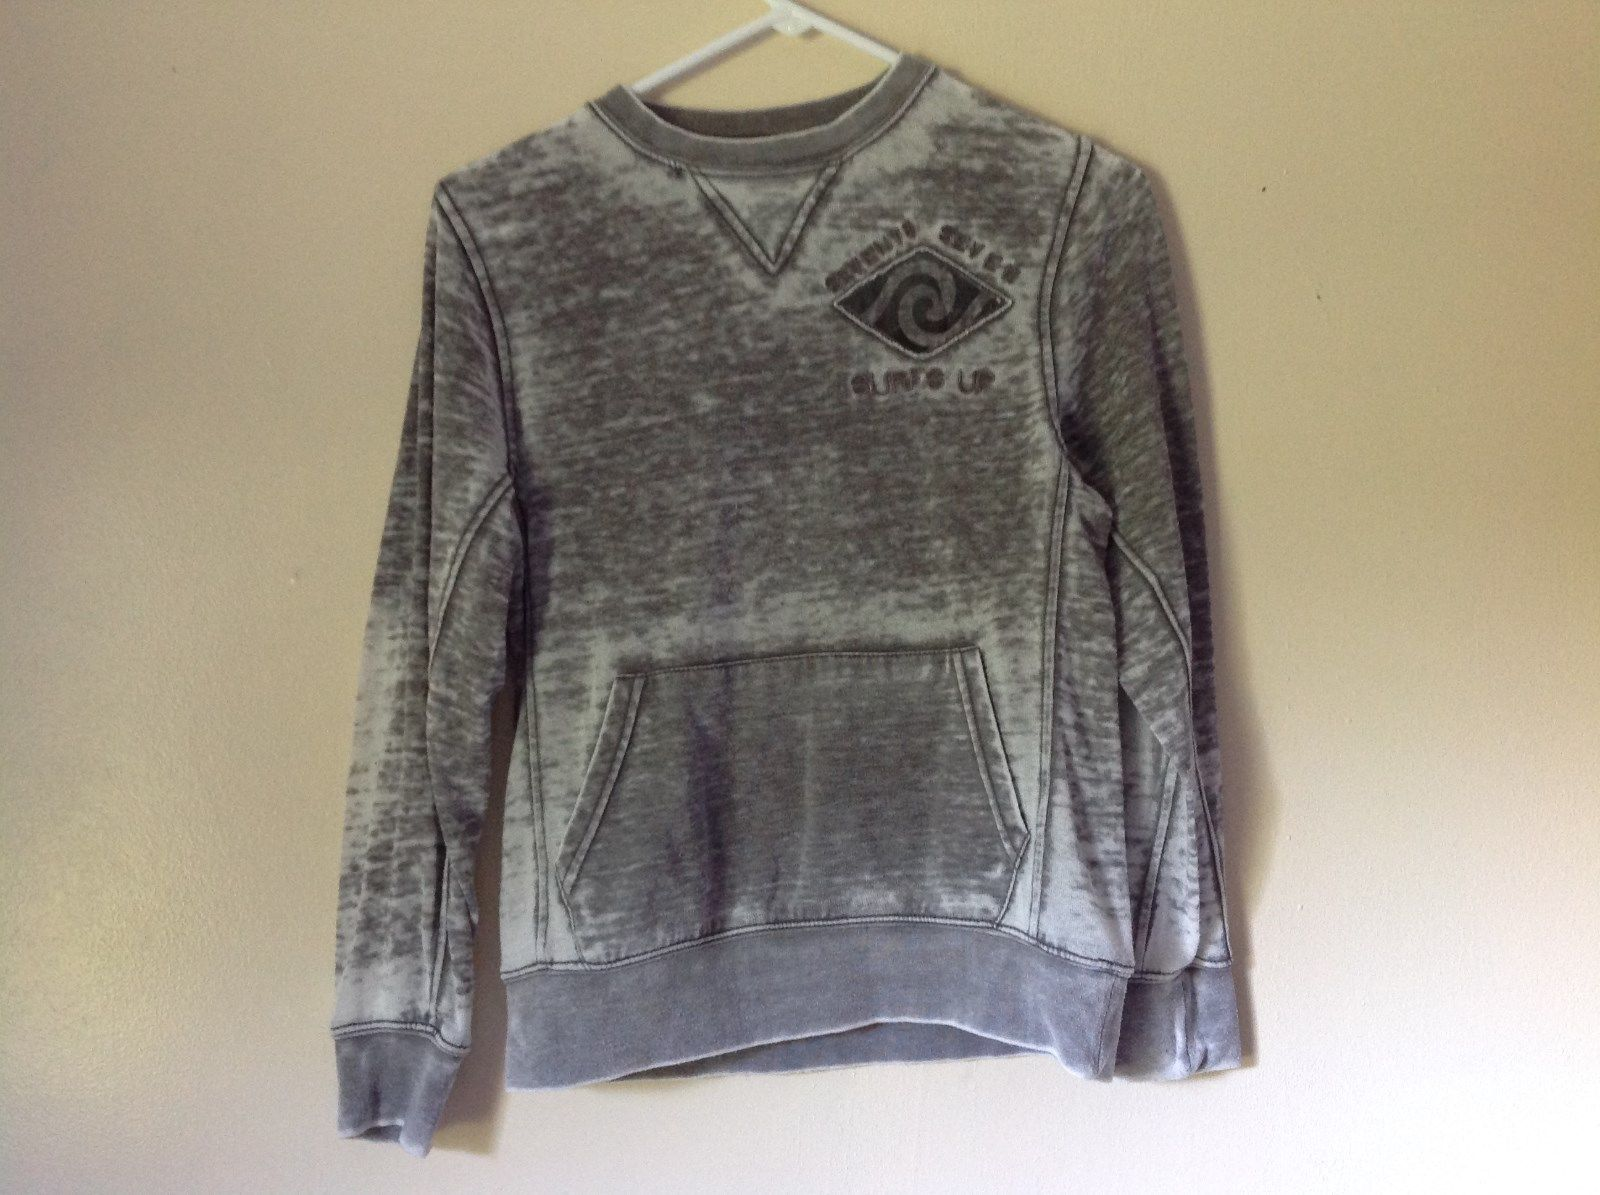 77 Kids by American Eagle Size M 10 Gray White Long Sleeve Sweatshirt